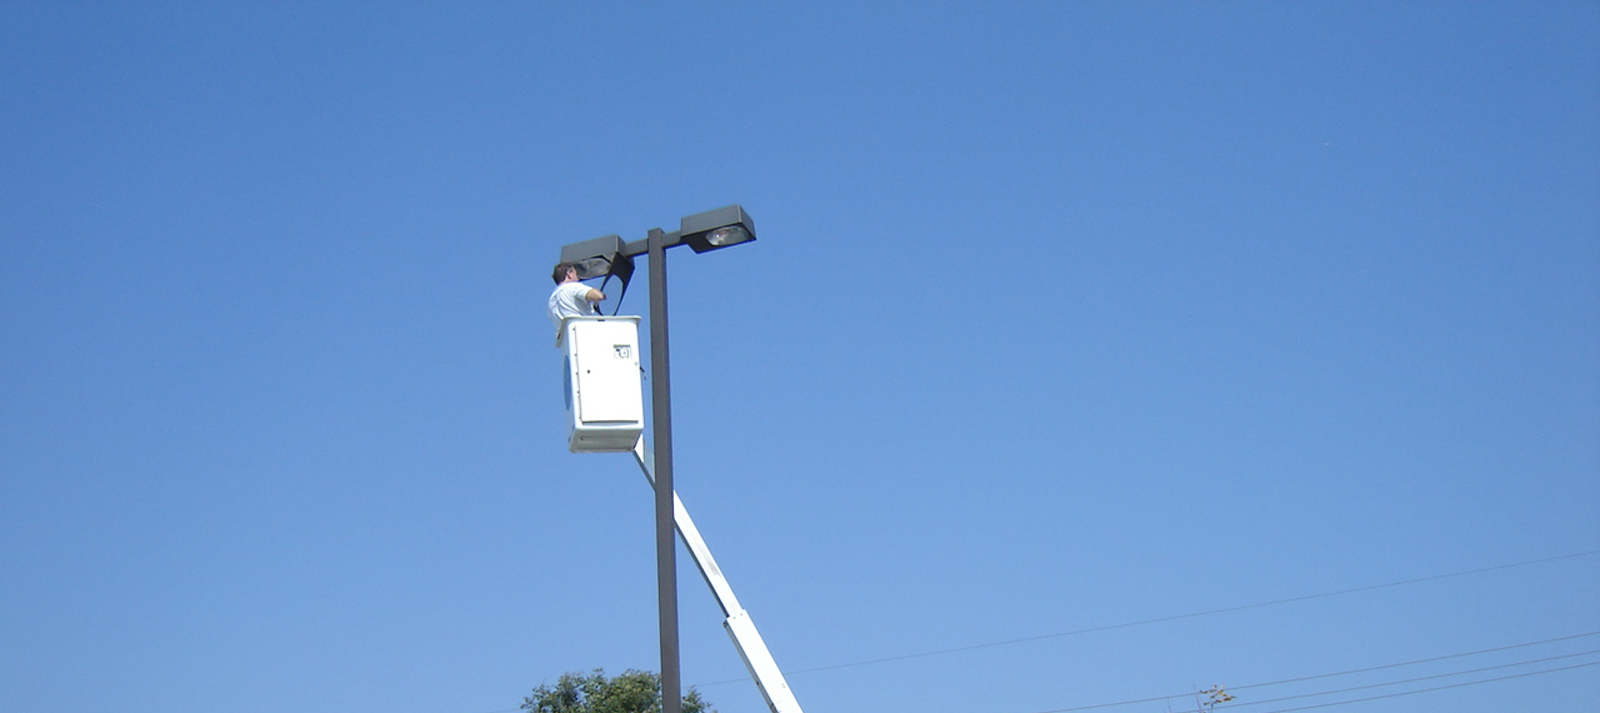 Outdoor parking lot lighting bucket truck